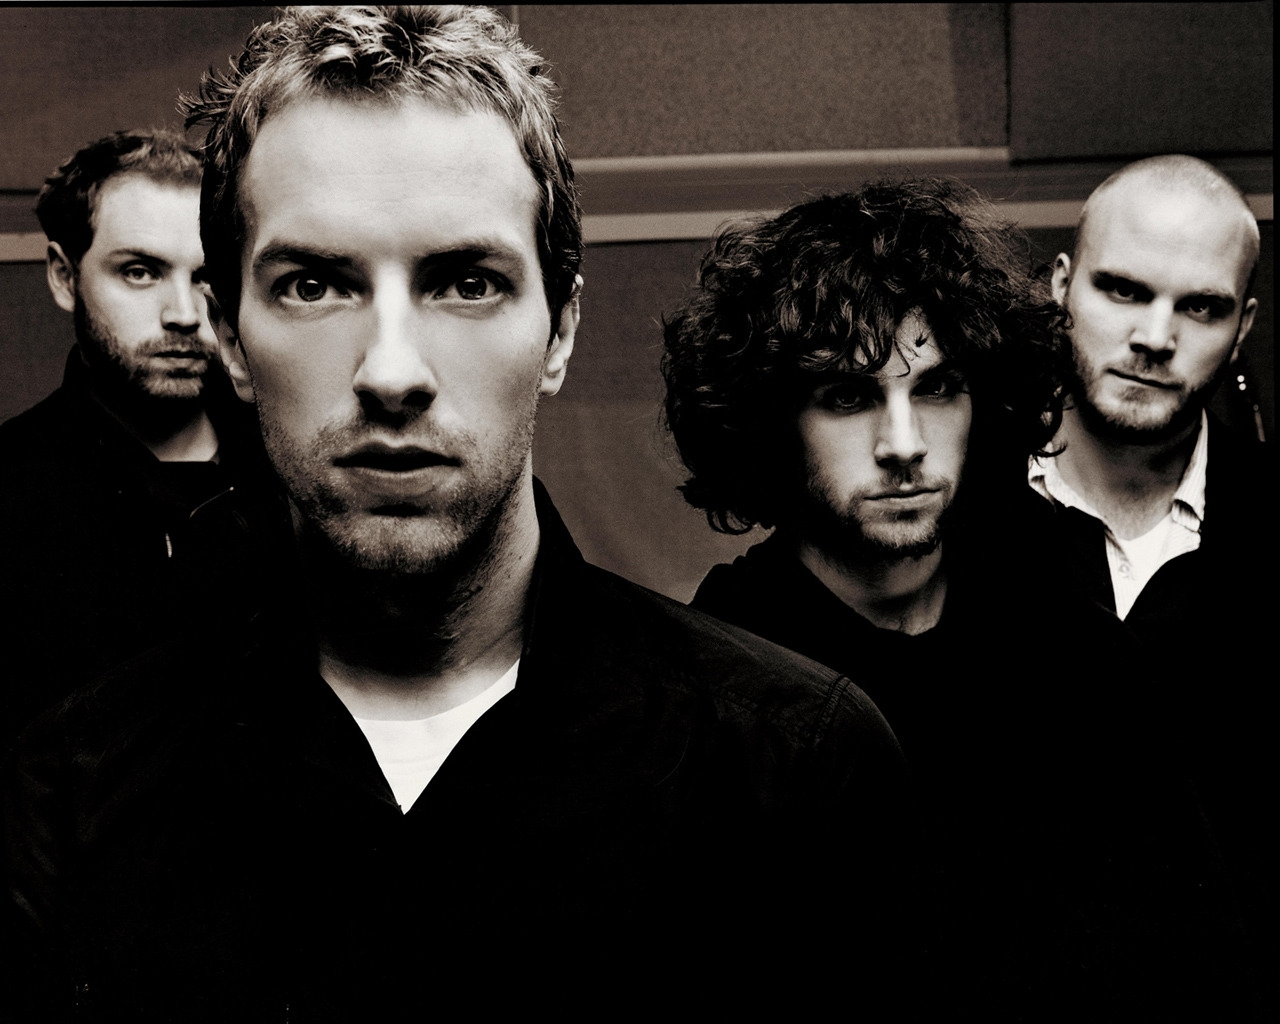 Coldplay Black and White for 1280 x 1024 resolution